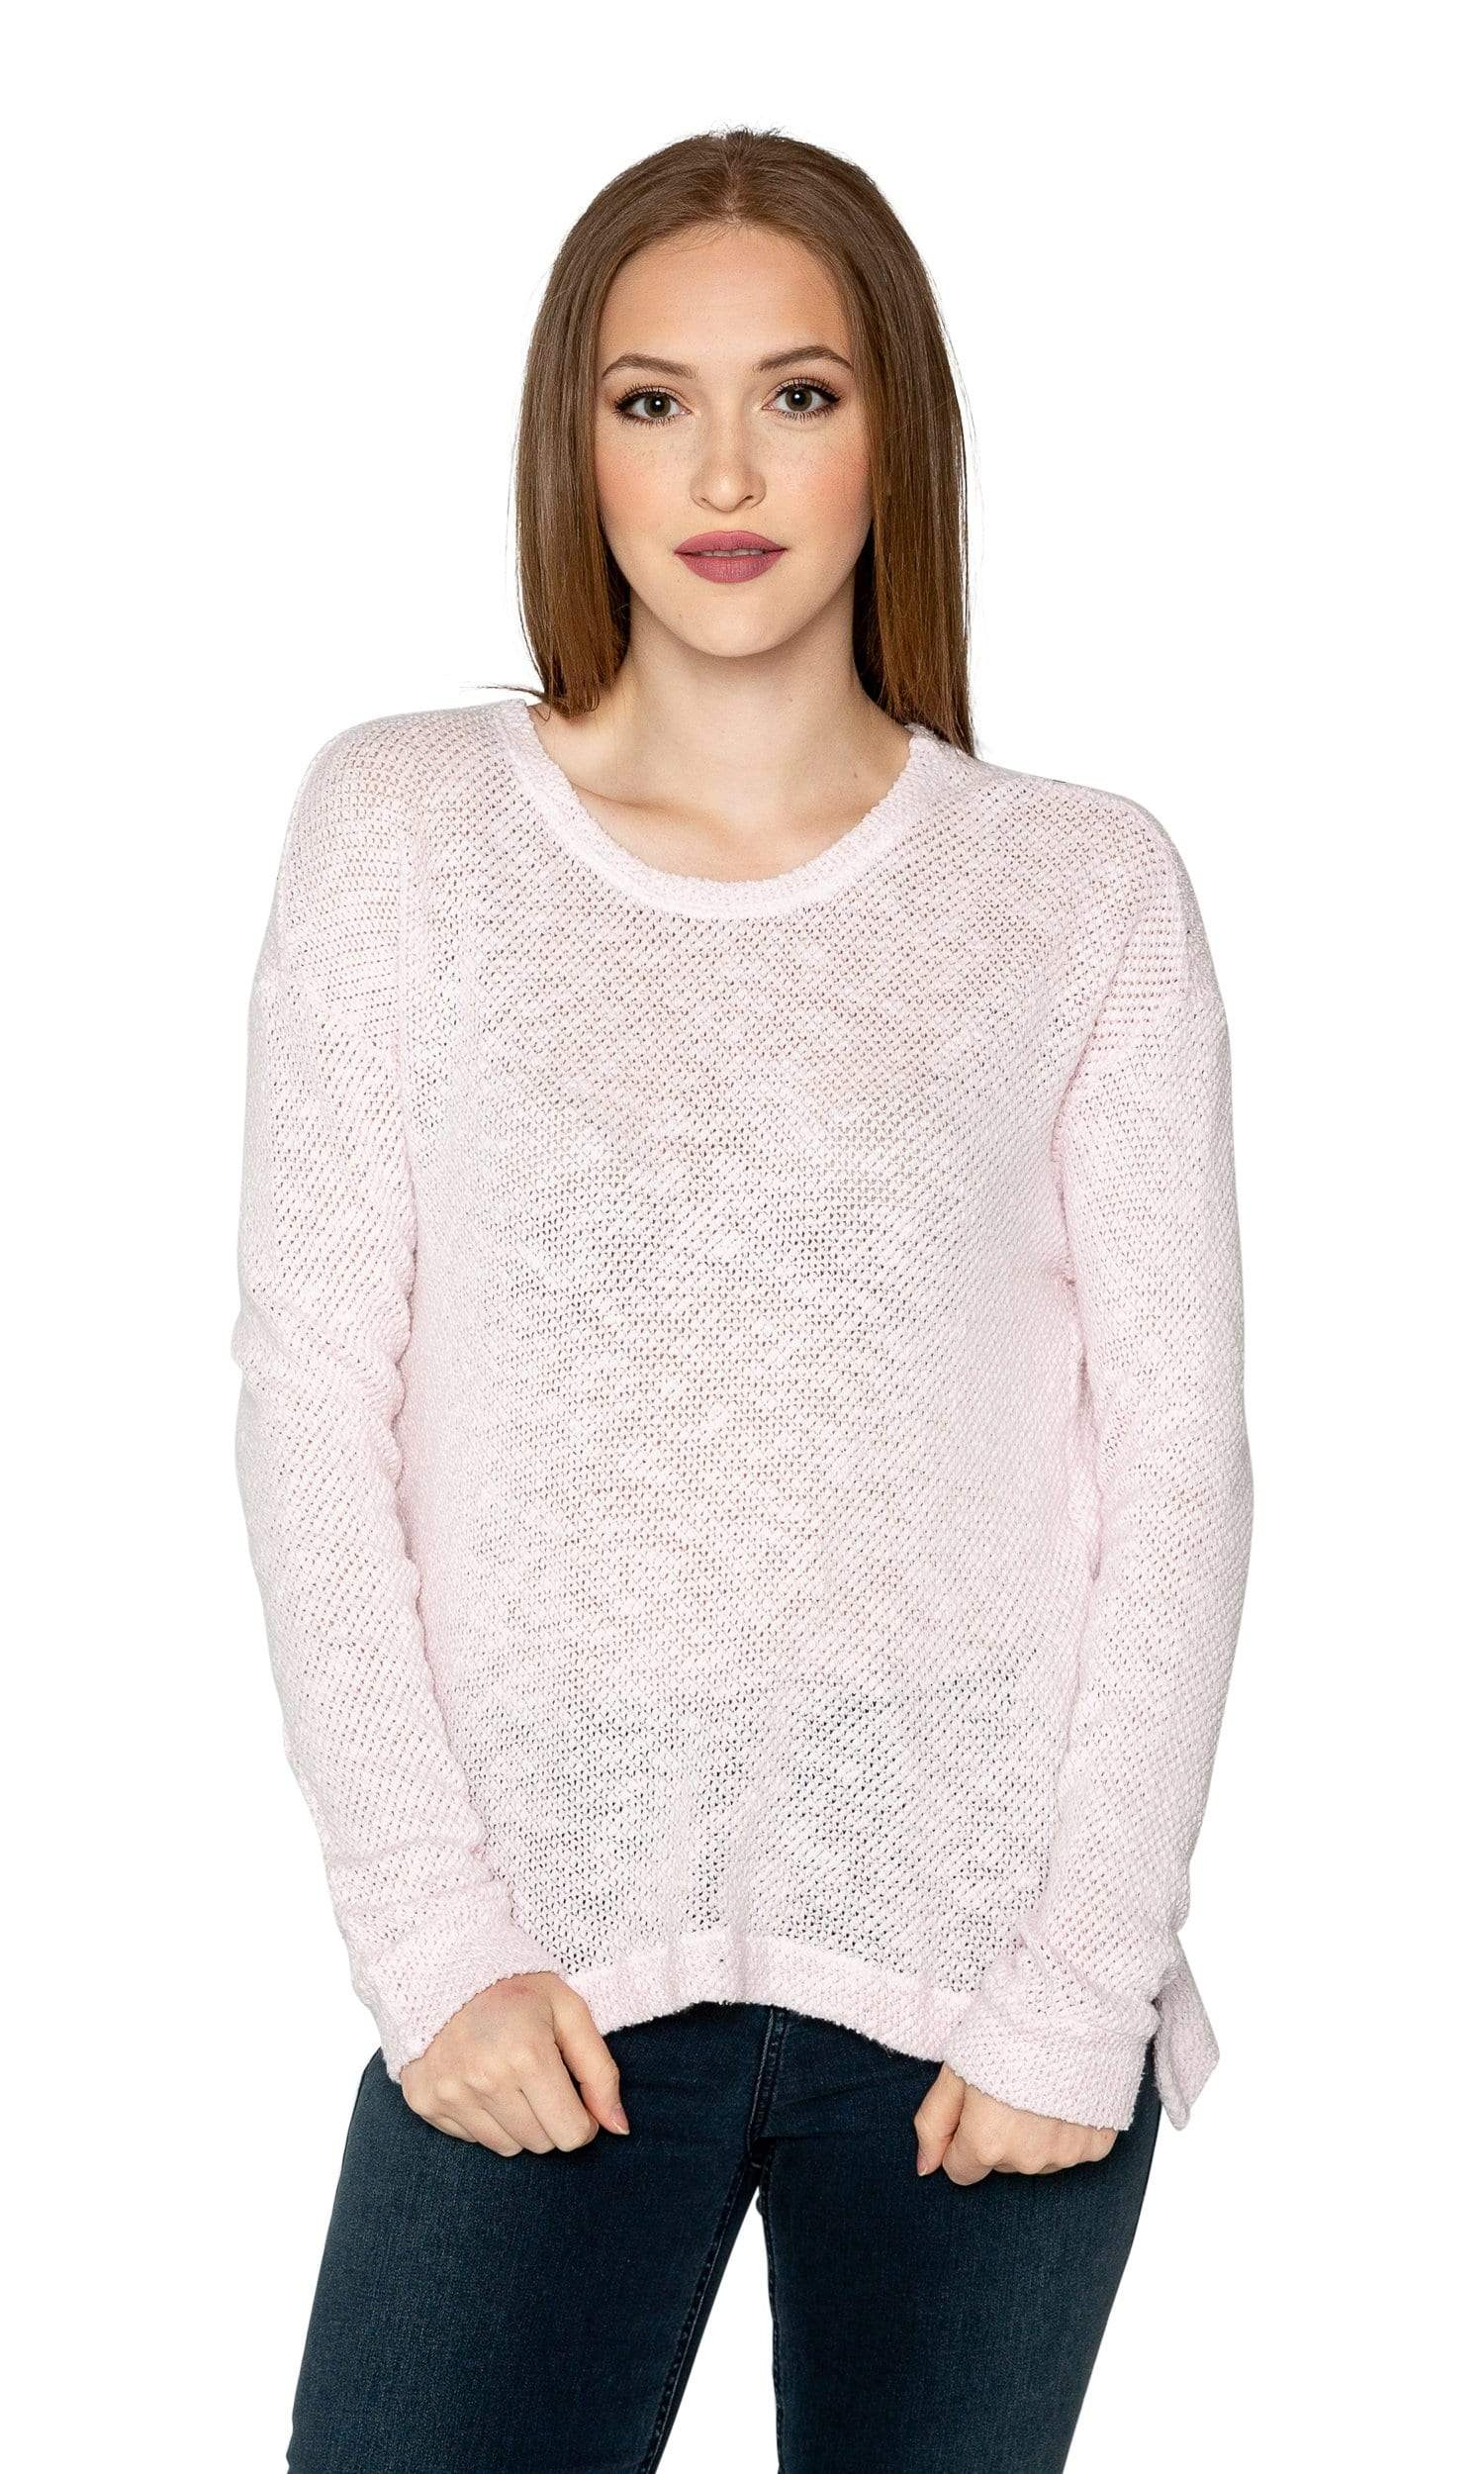 Velvet by Graham & Spencer Chutney Cotton Crochet Top